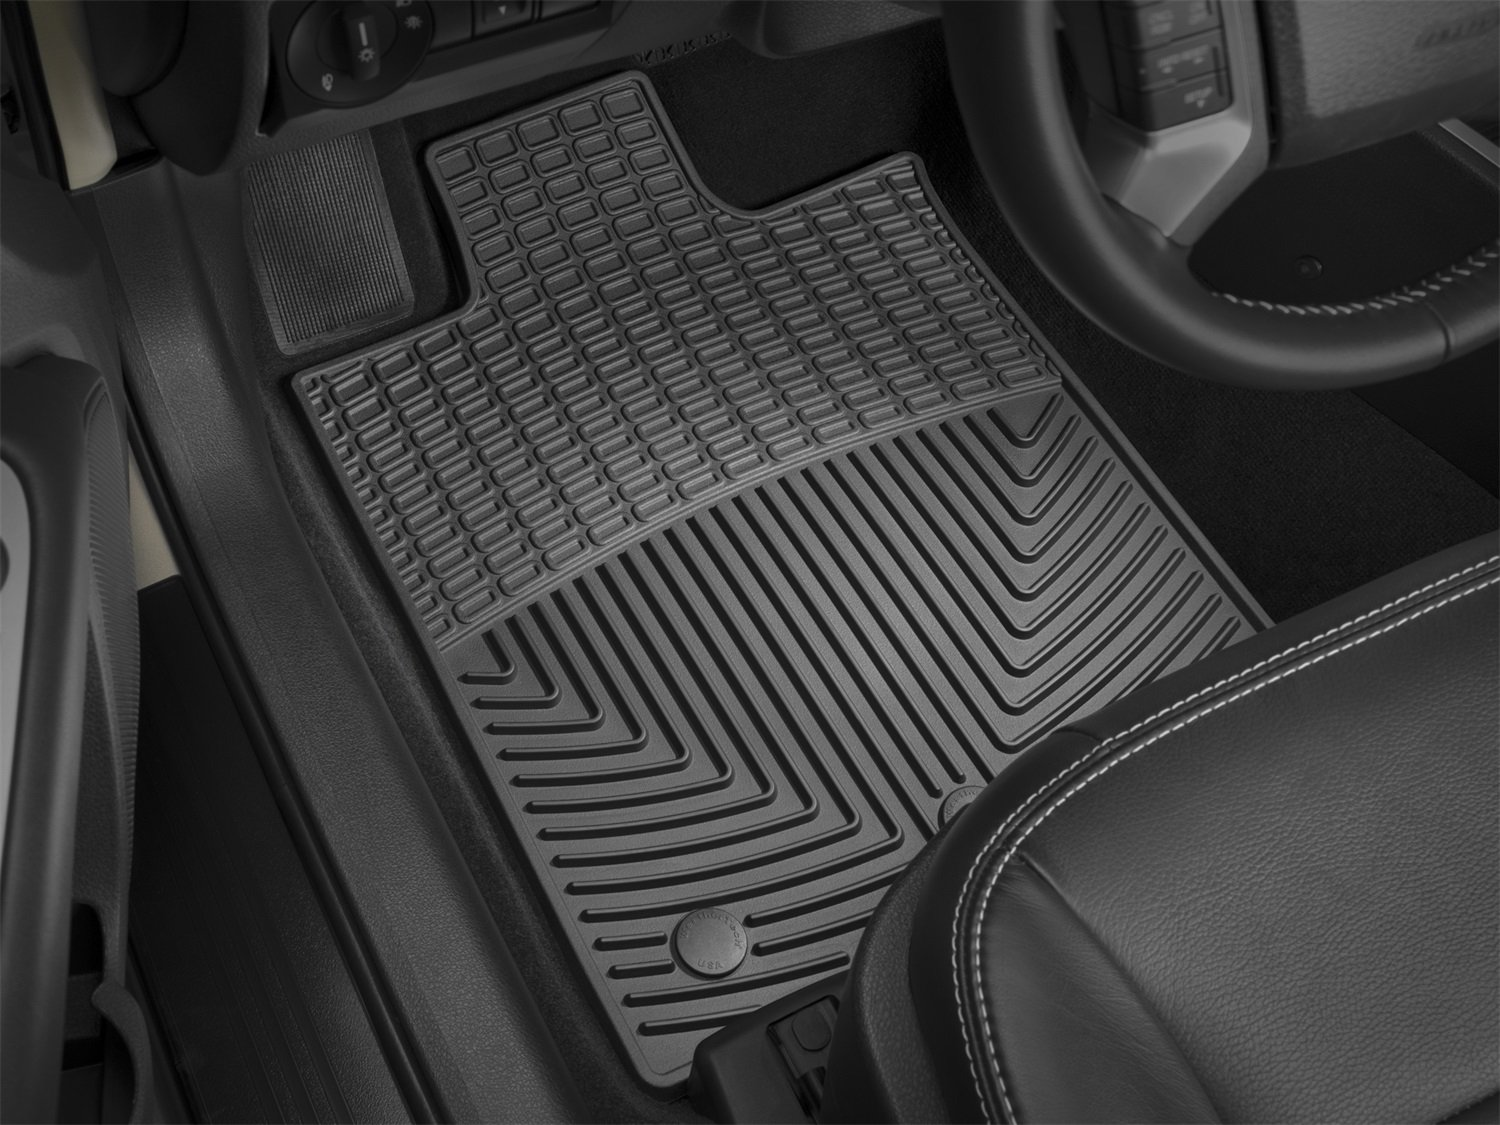 mats car ford weathertech automotive rear amazon fit com dp tan super for mat floorliner custom crew